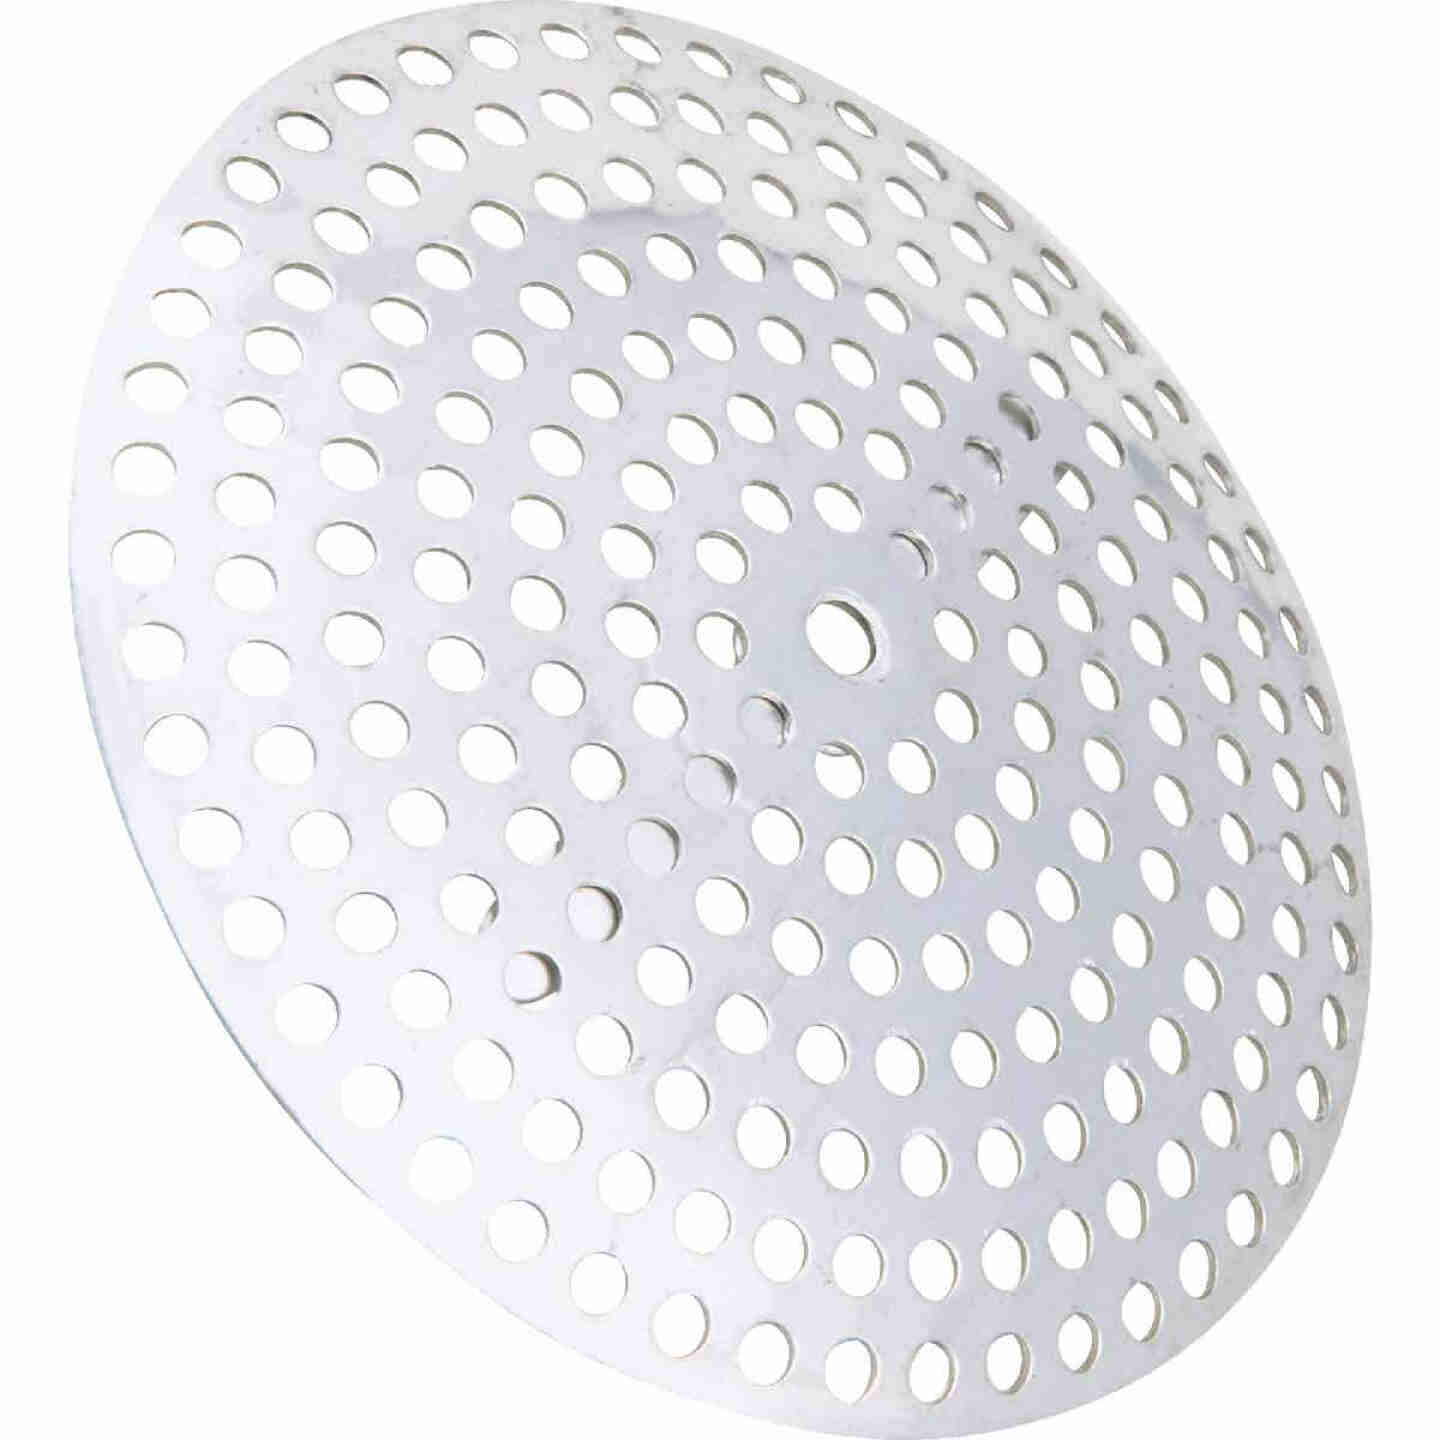 Do it 3-1/8 In. Chrome-Plated Steel Kitchen Sink Drain Strainer Image 1